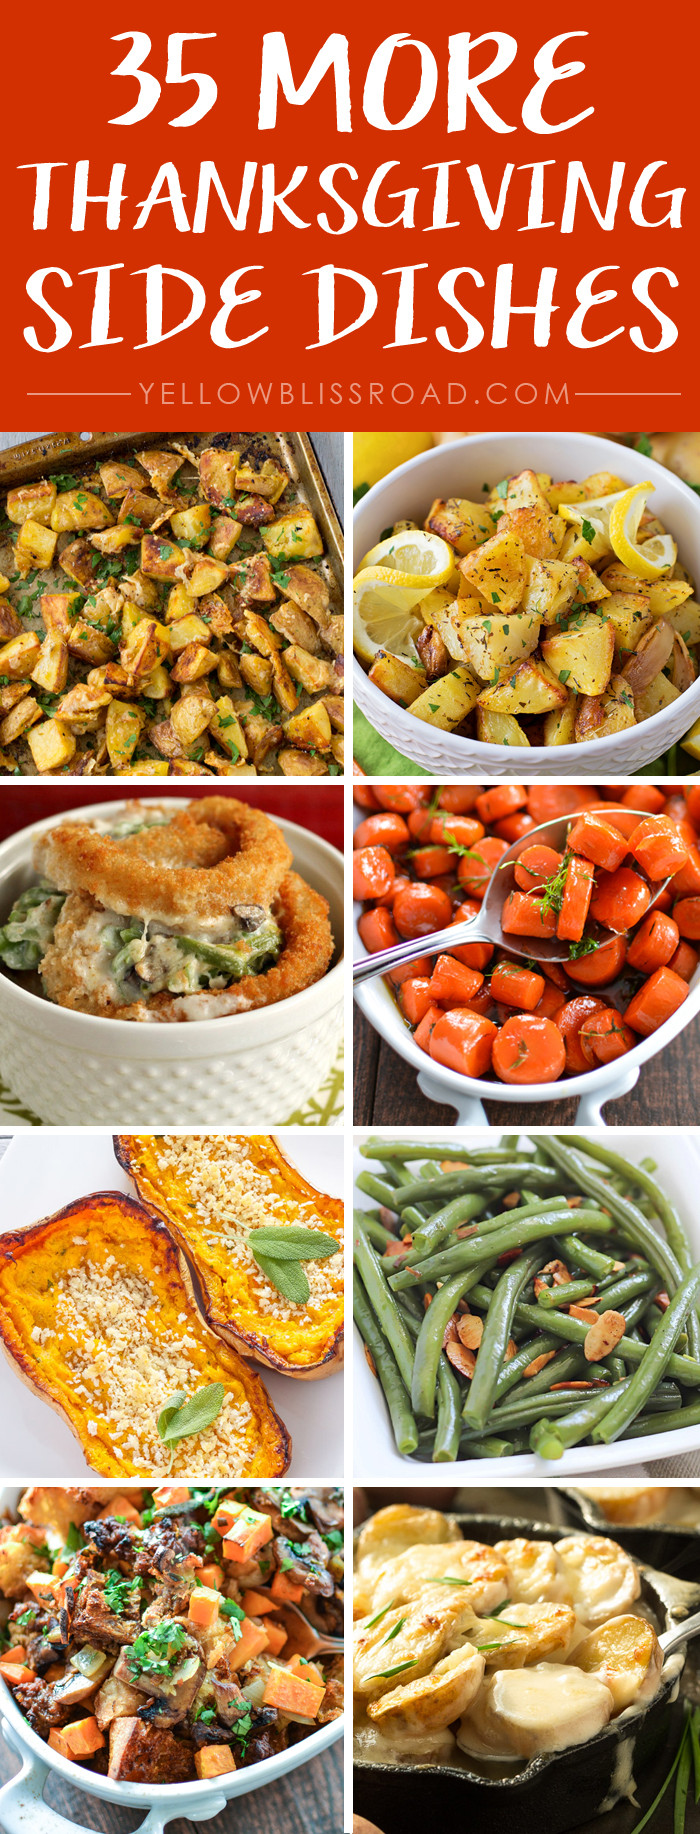 Side Dishes For Thanksgiving Dinner  Twice Baked Potato Casserole with Potato Chip Crust